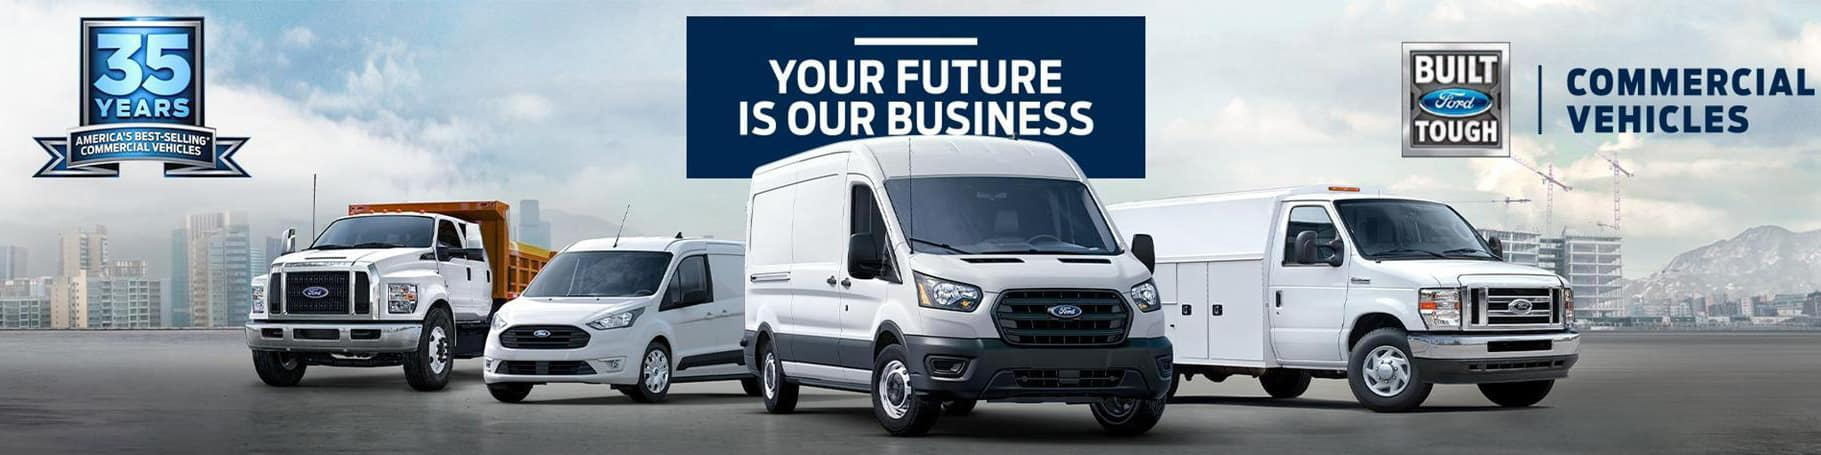 Ford Commercial Vehicles Near Los Angeles